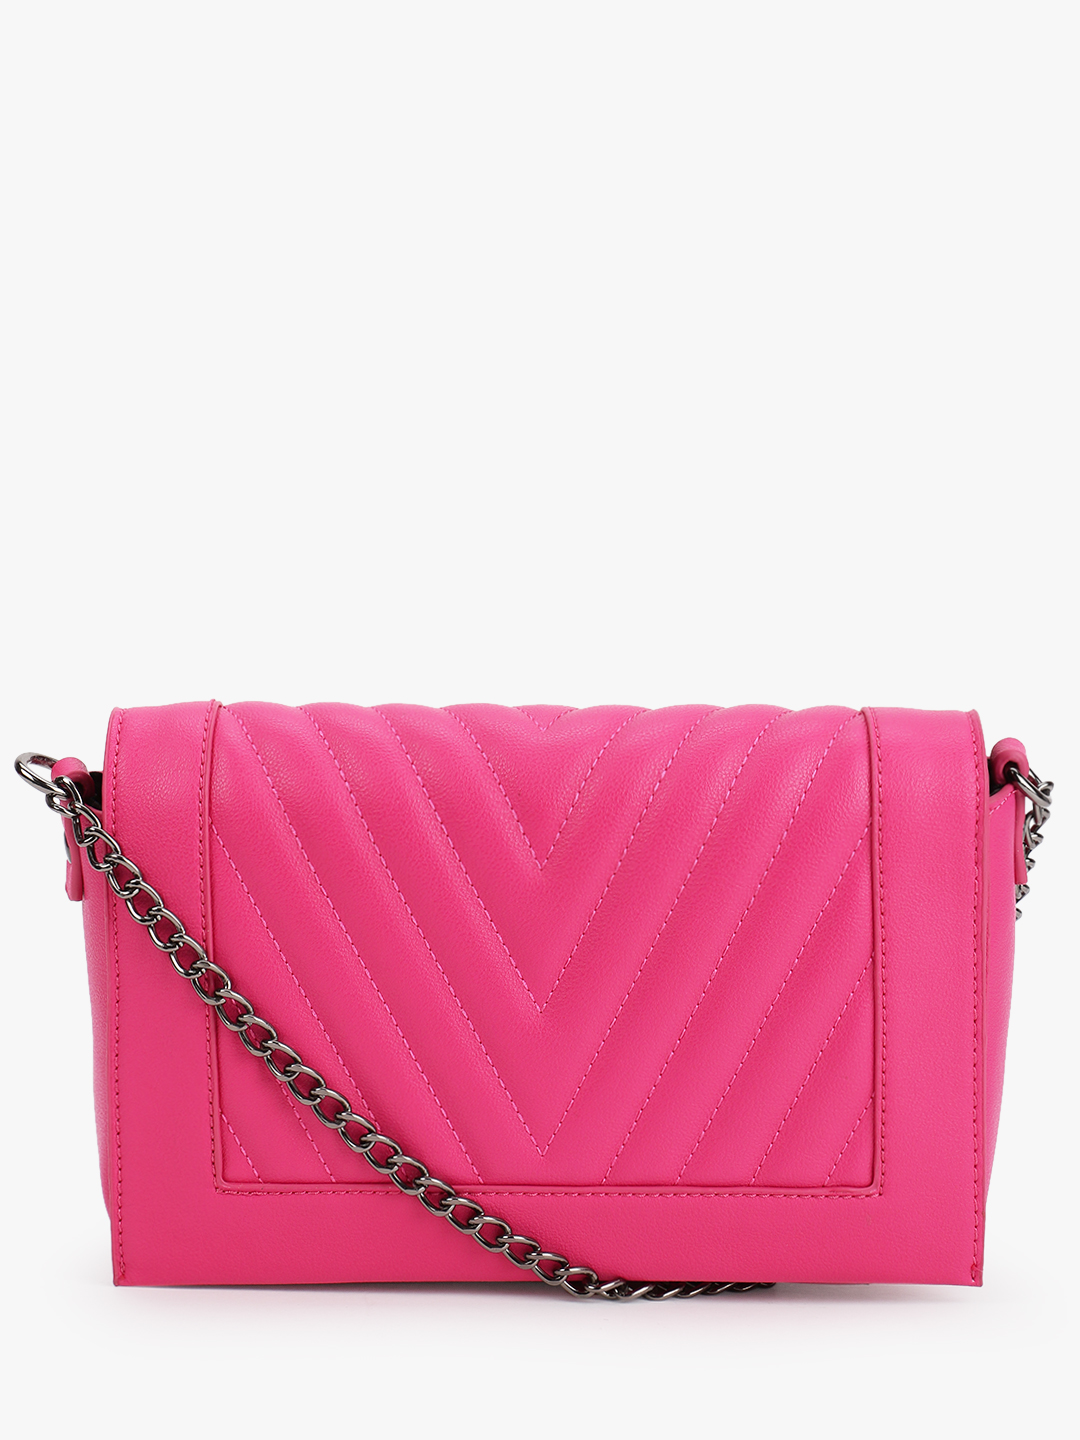 Only Pink Florence Quilted Sling Bag 1